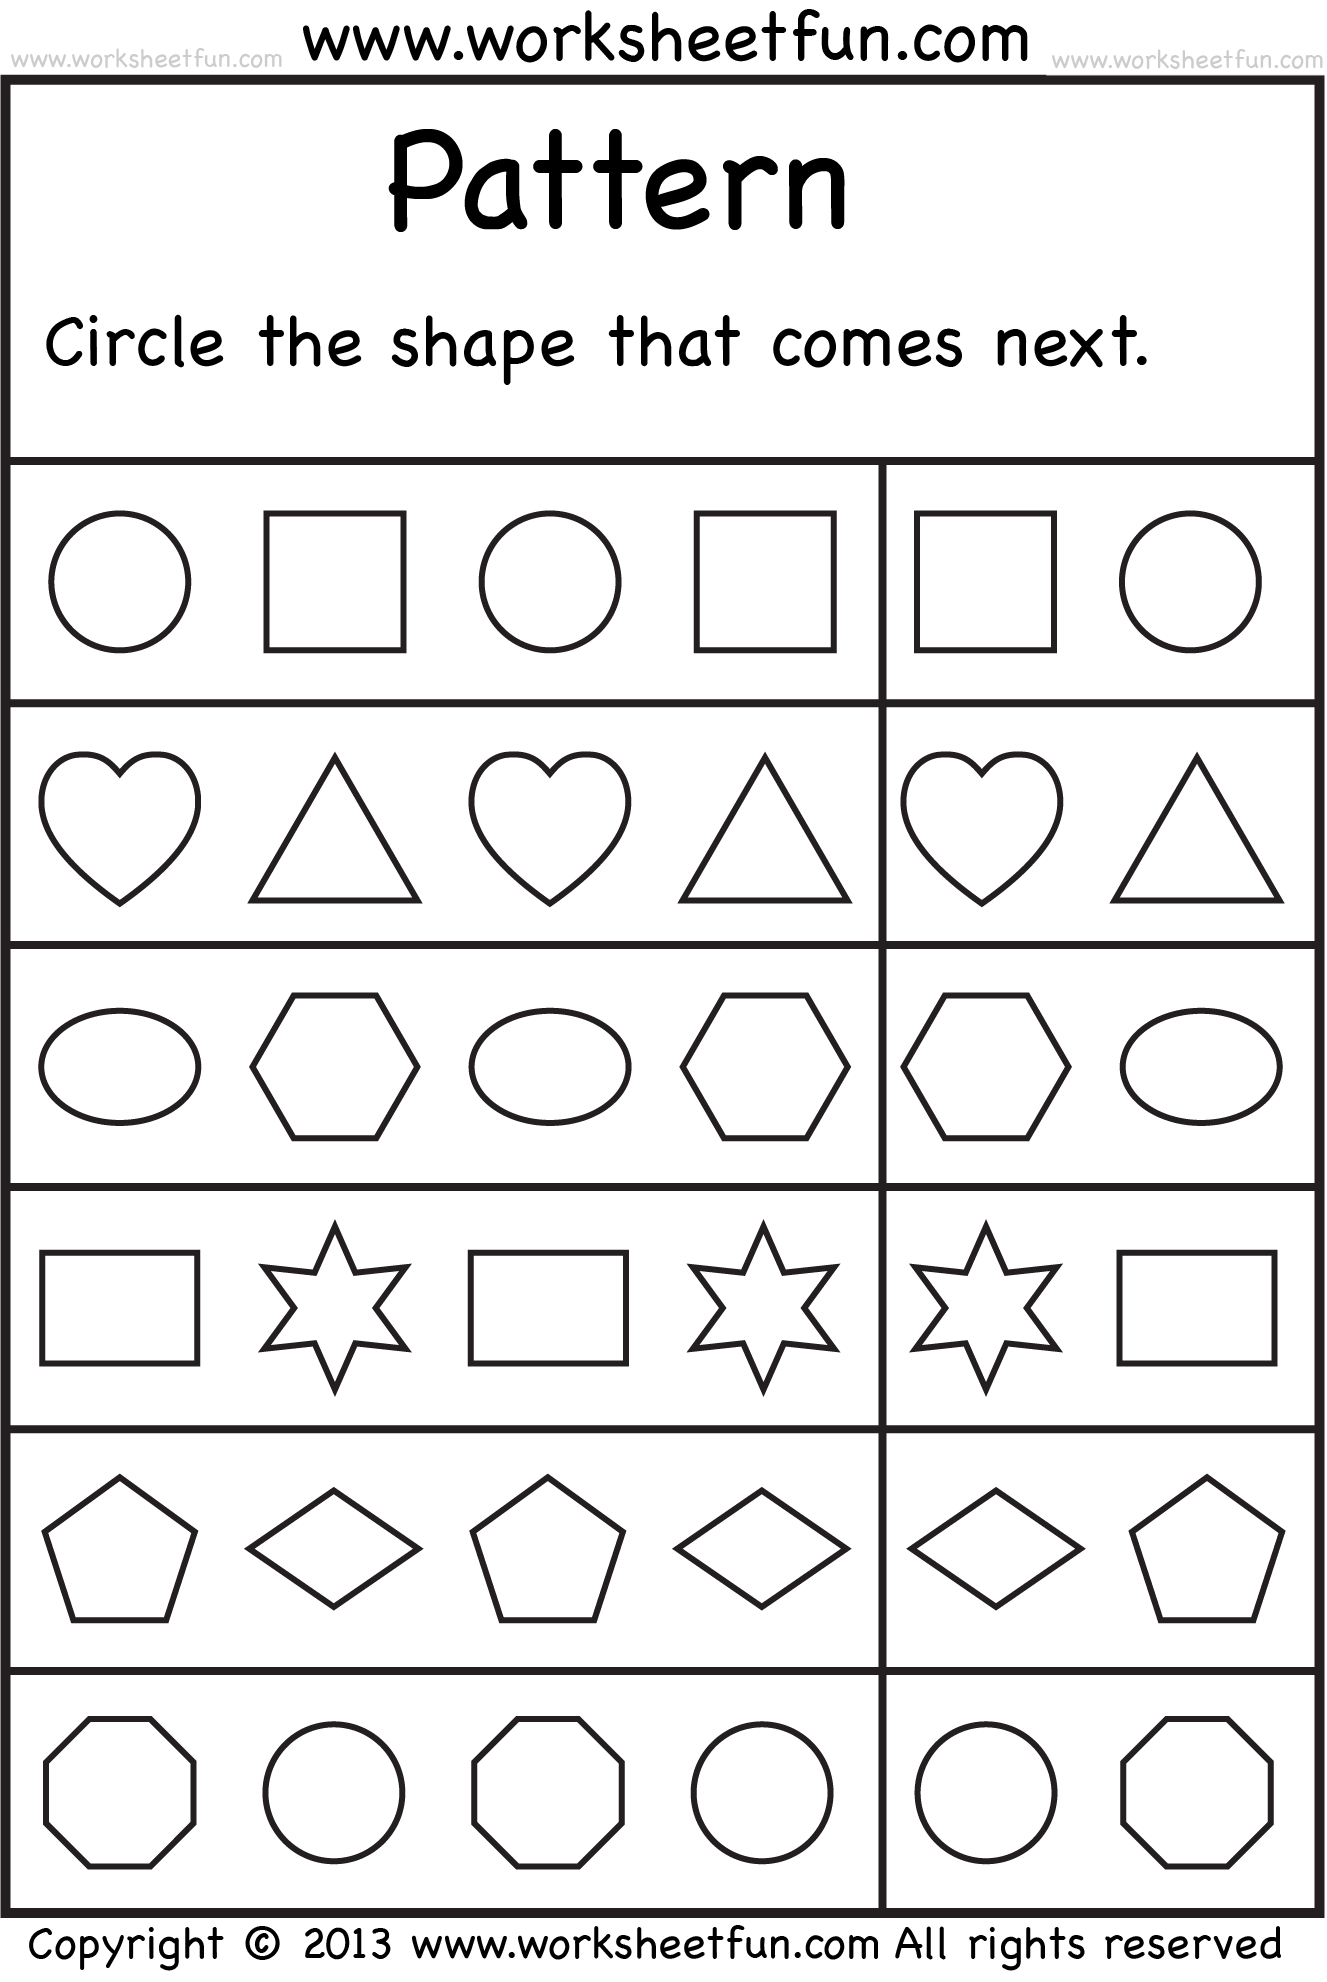 Proatmealus  Picturesque  Images About School Worksheets On Pinterest  Number Words  With Licious  Images About School Worksheets On Pinterest  Number Words Alphabet Worksheets And Free Printable Kindergarten Worksheets With Beauteous Cut And Paste Sentence Worksheets Also Thermometer Worksheets Nd Grade In Addition Printable Worksheets For  Year Olds And Tangrams Worksheet As Well As Arabic Handwriting Worksheets Additionally Th Grade Science Worksheets Printable From Pinterestcom With Proatmealus  Licious  Images About School Worksheets On Pinterest  Number Words  With Beauteous  Images About School Worksheets On Pinterest  Number Words Alphabet Worksheets And Free Printable Kindergarten Worksheets And Picturesque Cut And Paste Sentence Worksheets Also Thermometer Worksheets Nd Grade In Addition Printable Worksheets For  Year Olds From Pinterestcom